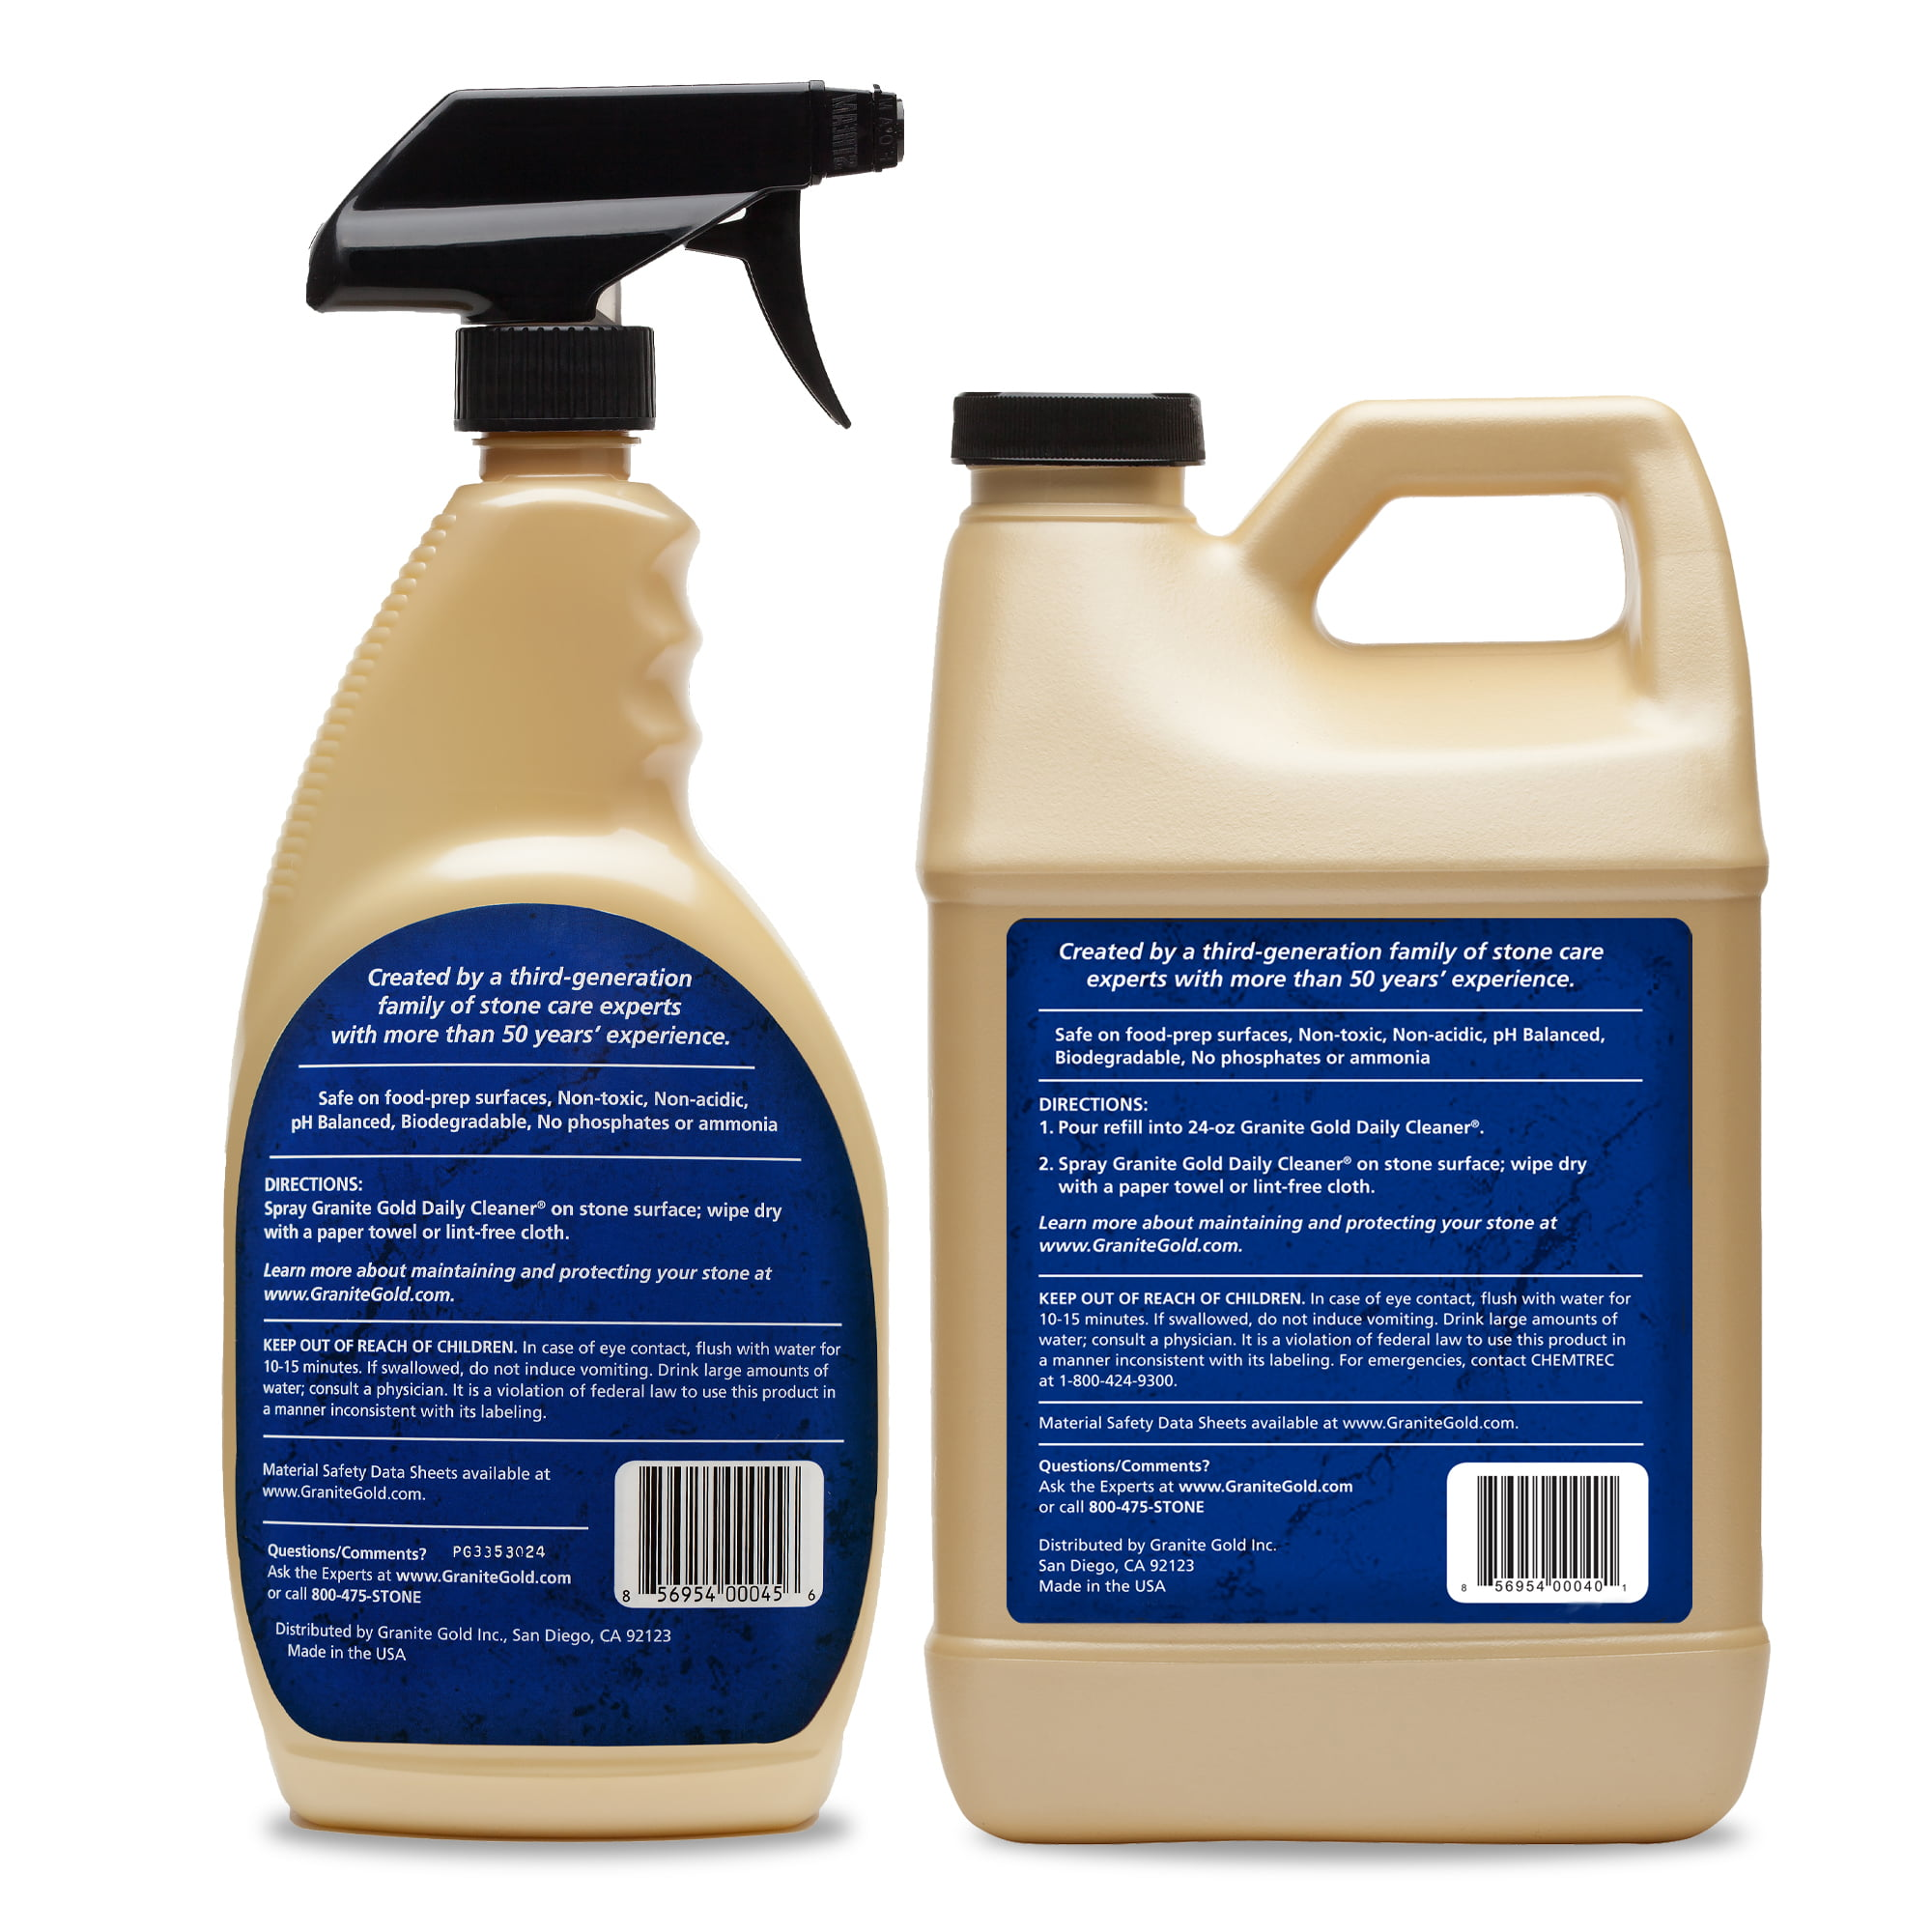 Granite Gold Daily Cleaner 88 Fl Oz Streak Free Granite Quartz And More Walmart Com Walmart Com